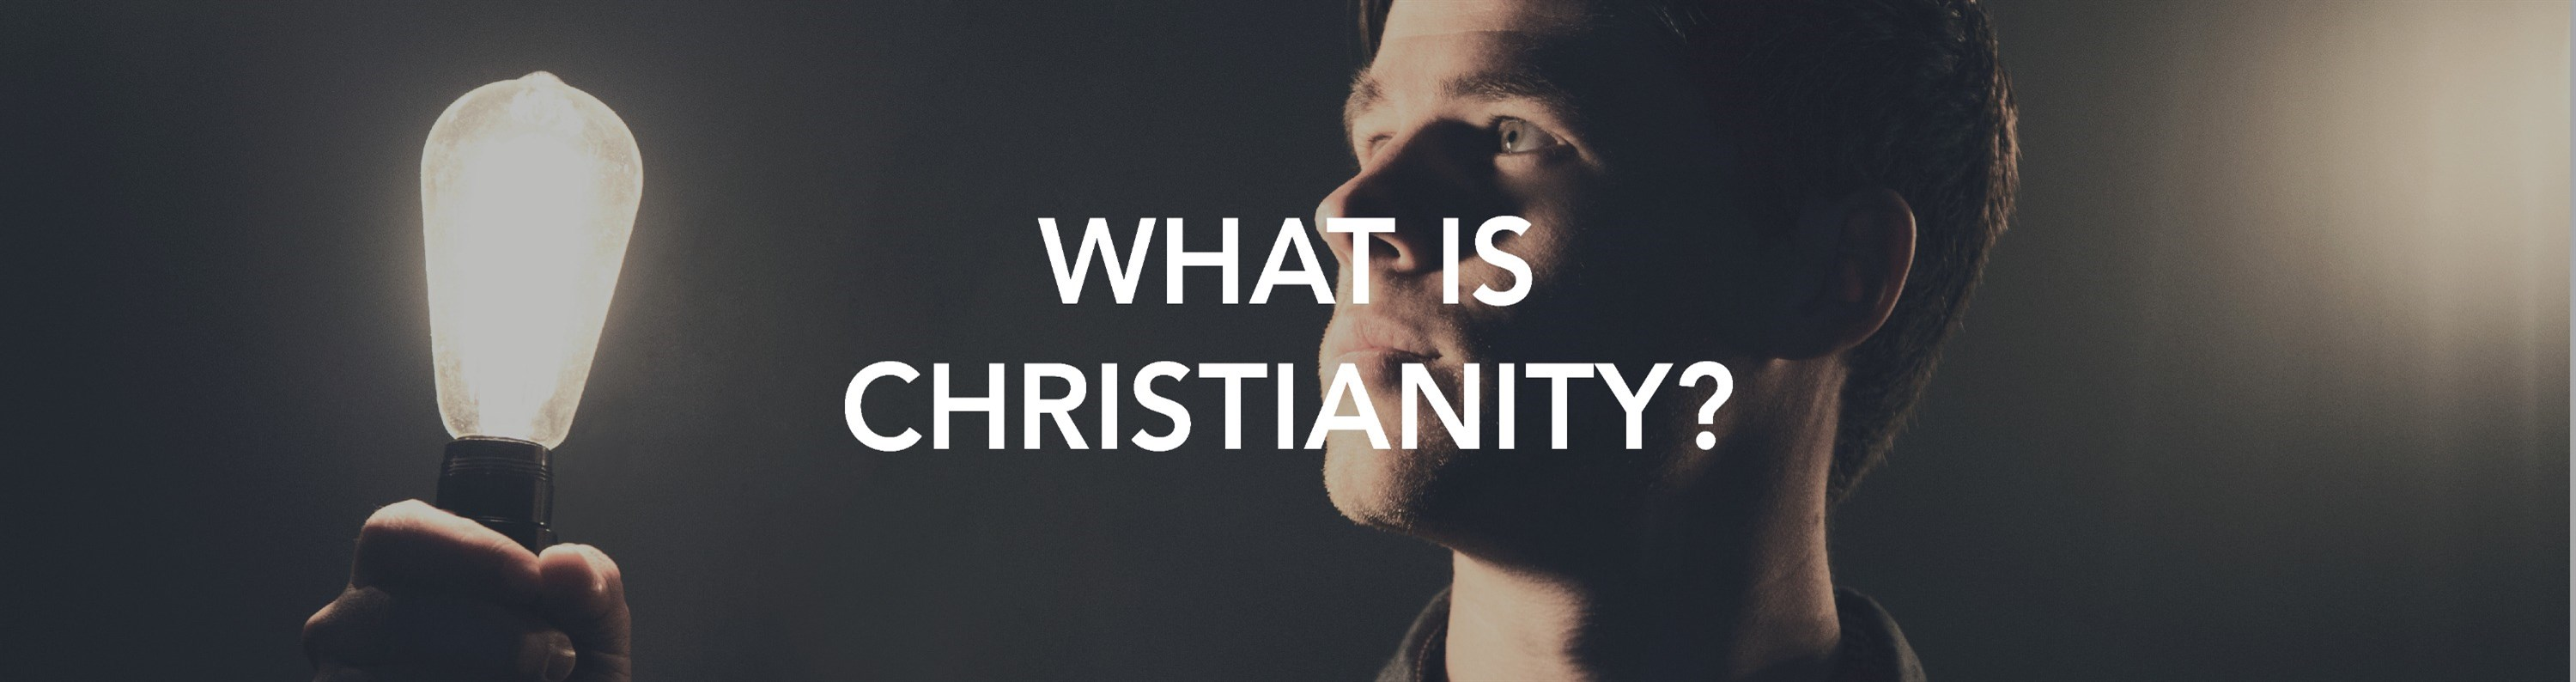 what is christianity Learn about christianity - having faith in god and jesus christ christian living articles, daily devotionals, bible trivia, and more.